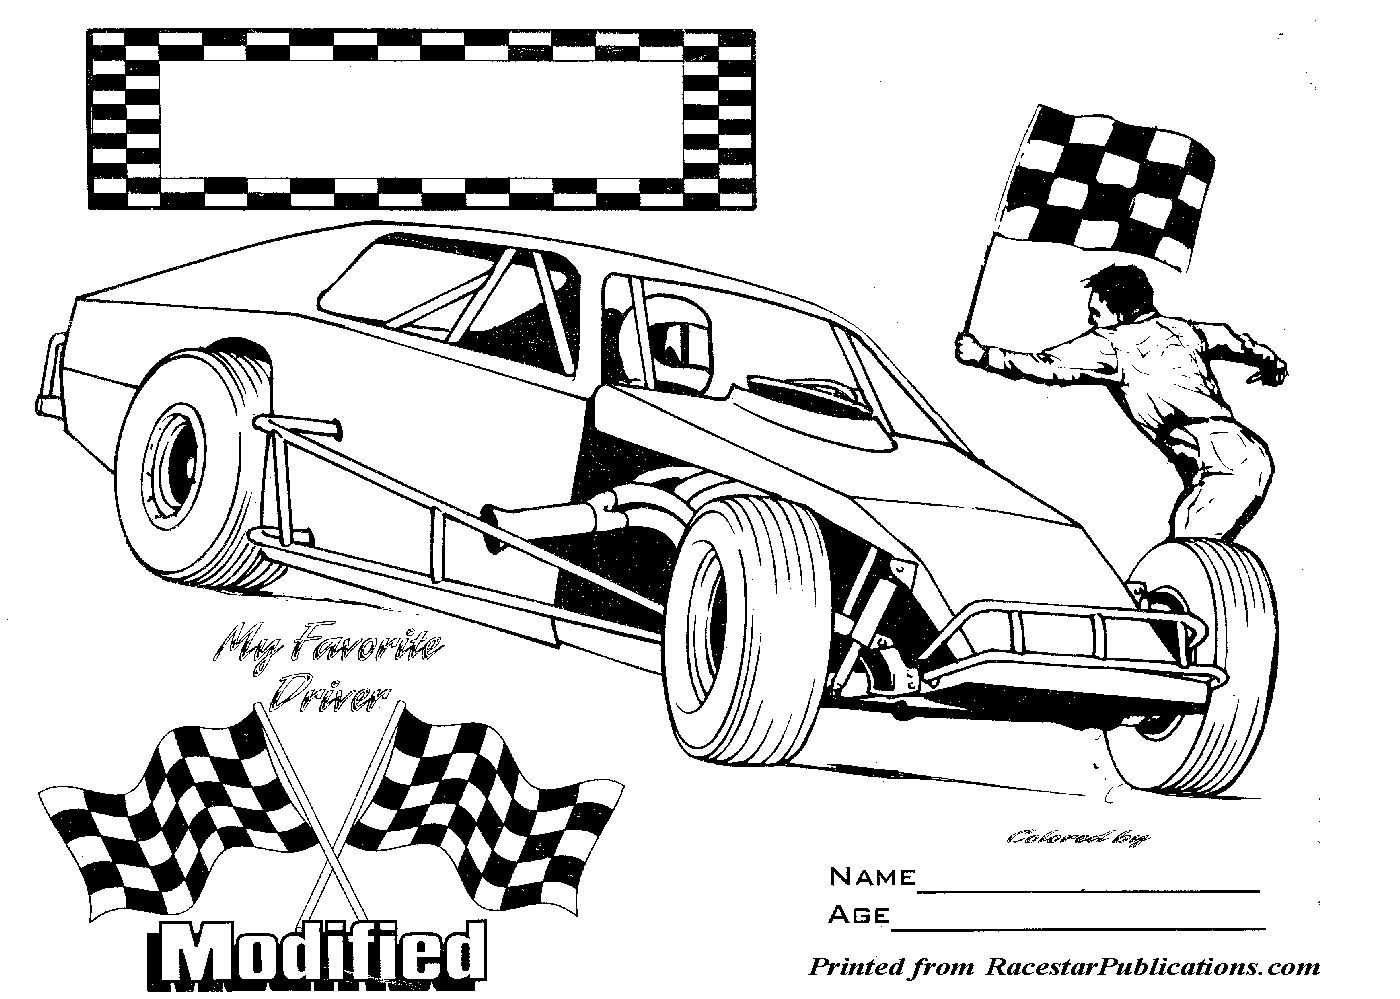 nascar coloring pages modified race car colouring pages - Racecar Coloring Pages